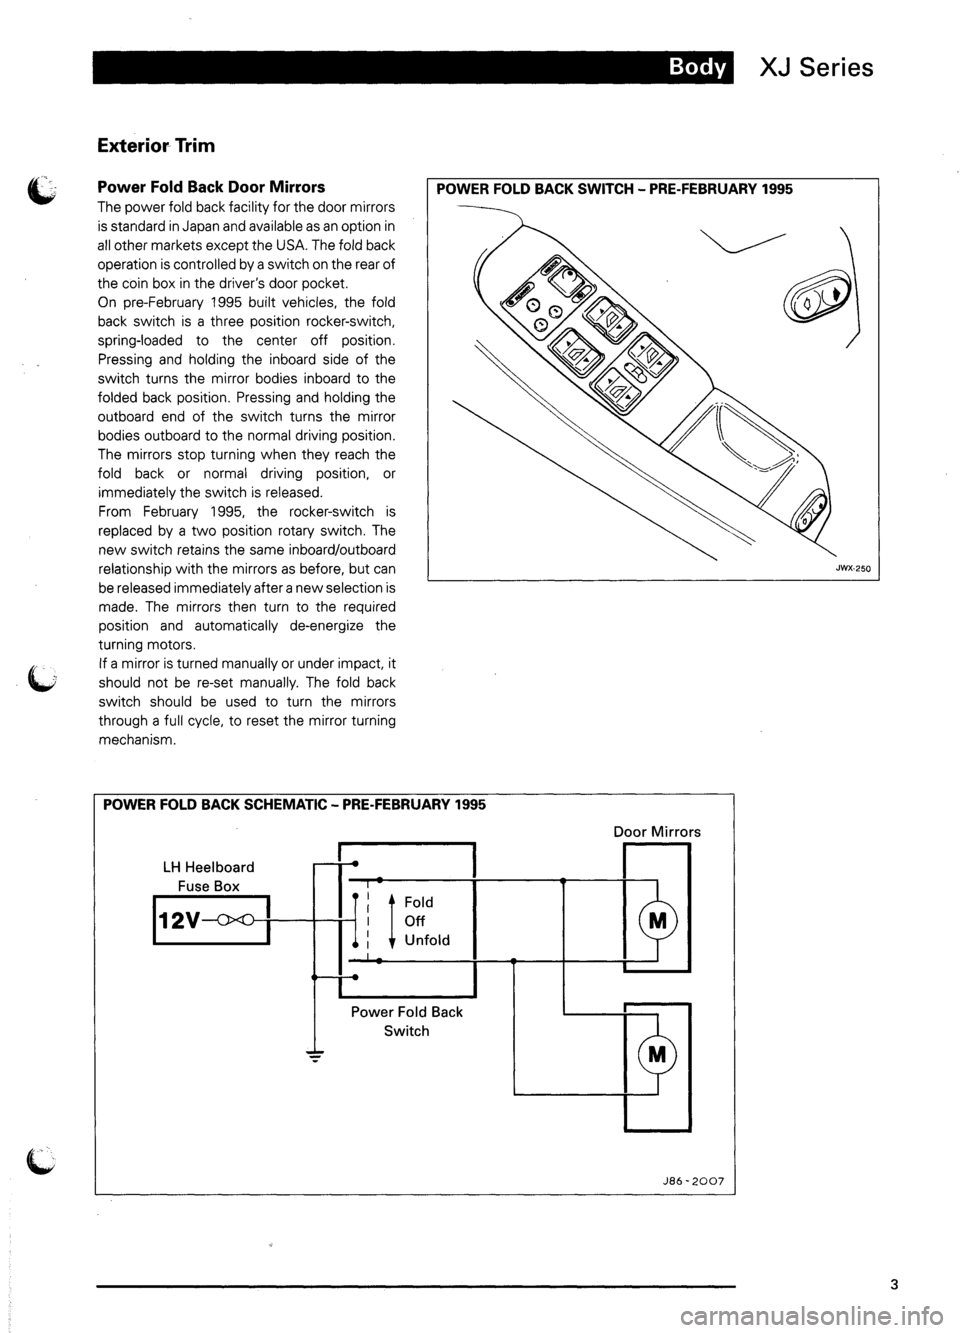 JAGUAR XJ6 1995 2.G Model Year Supplement Manual, Page 6